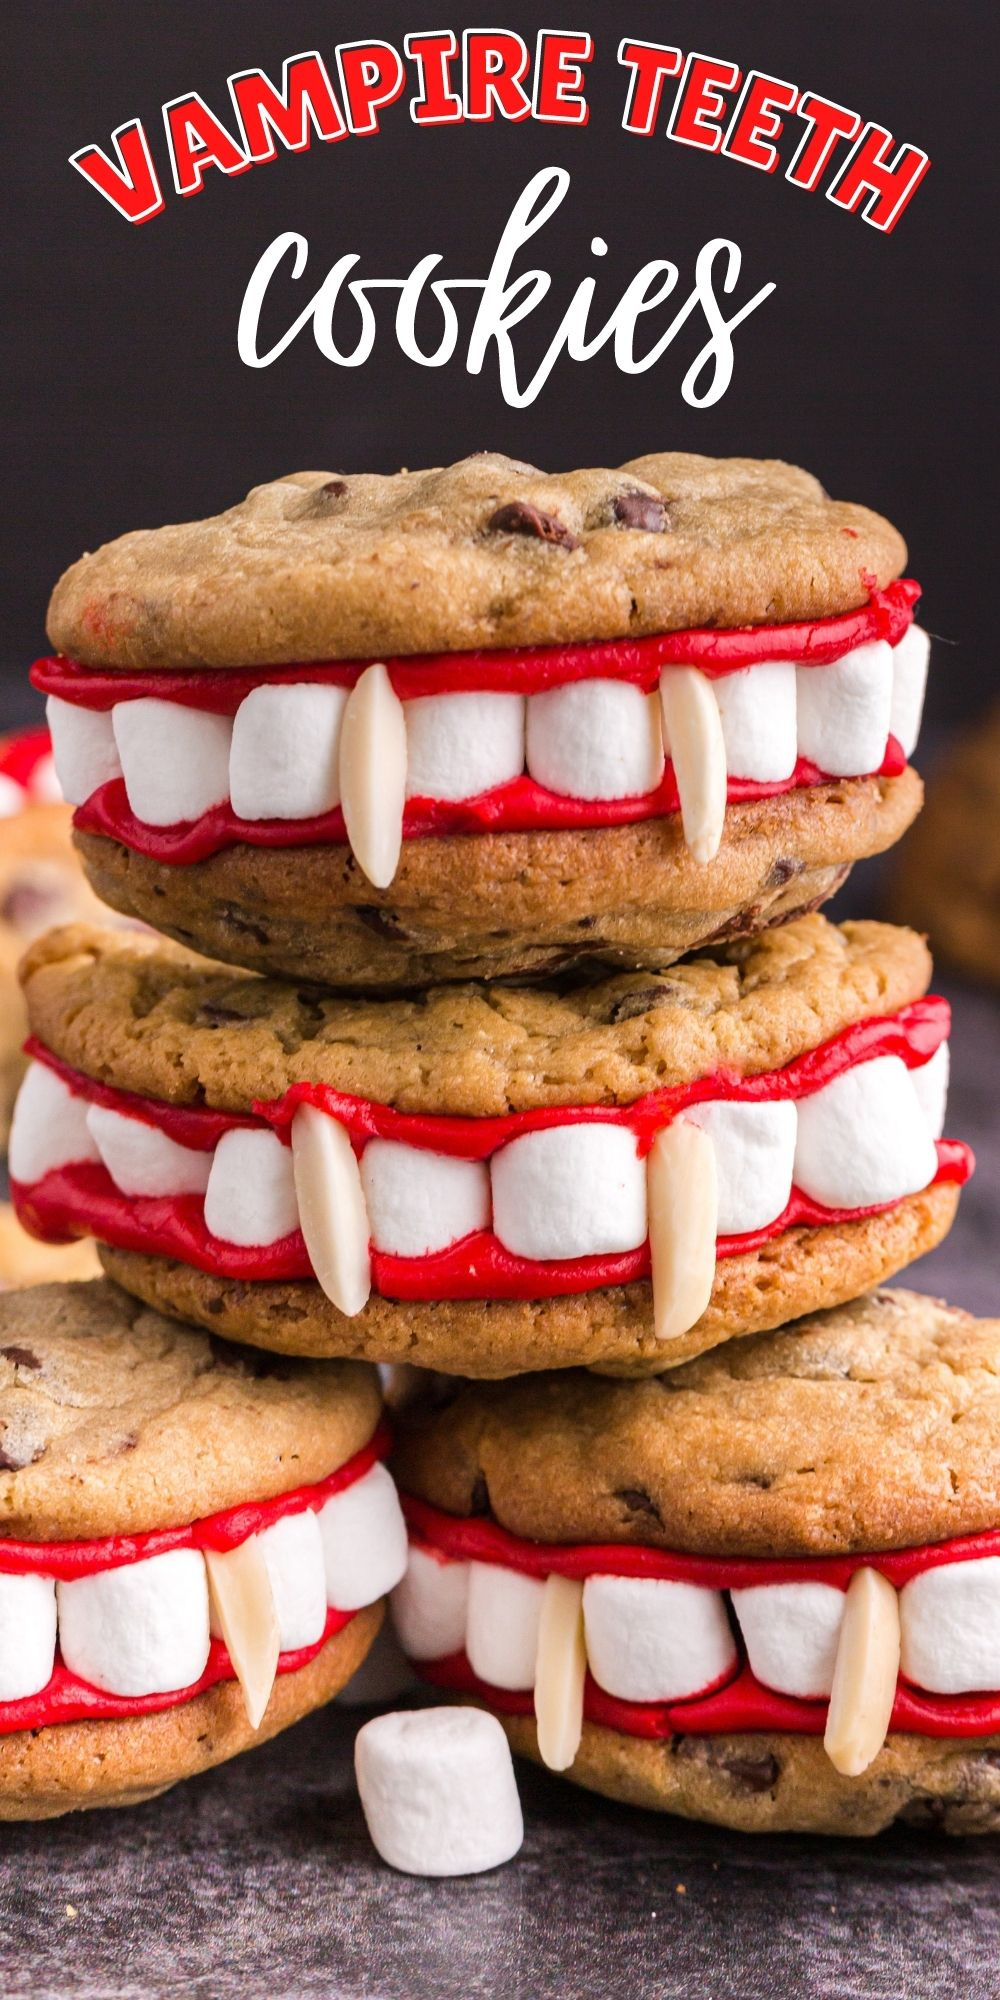 These Vampire Teeth Cookies are a spooky treat you can really (ahem) sink your teeth into. Super cute and easy to make! via @familyfresh